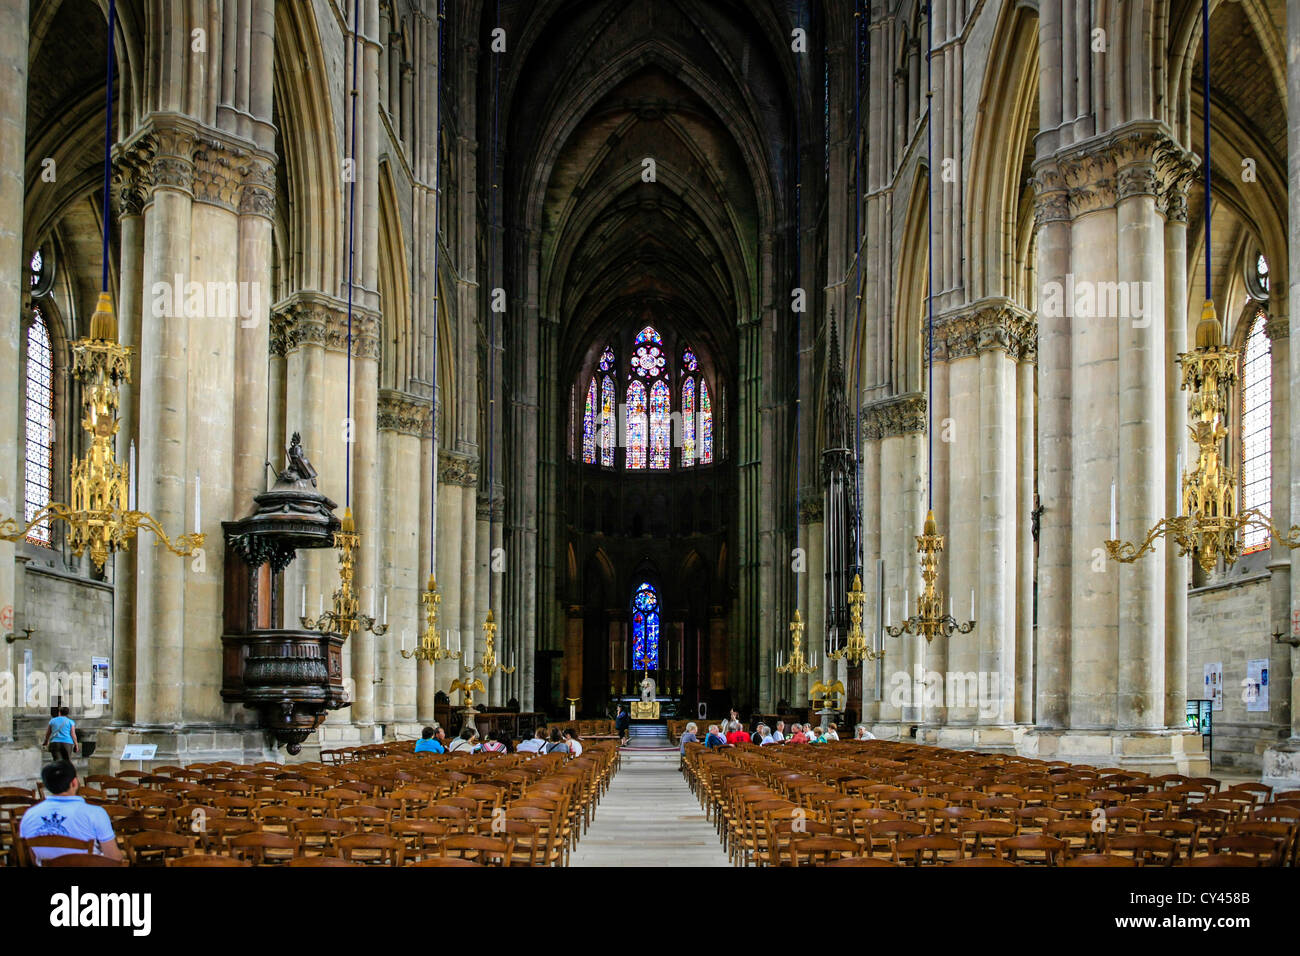 Interiors France Reims Cathedral Interior Stock Photos And Reims Cathedral